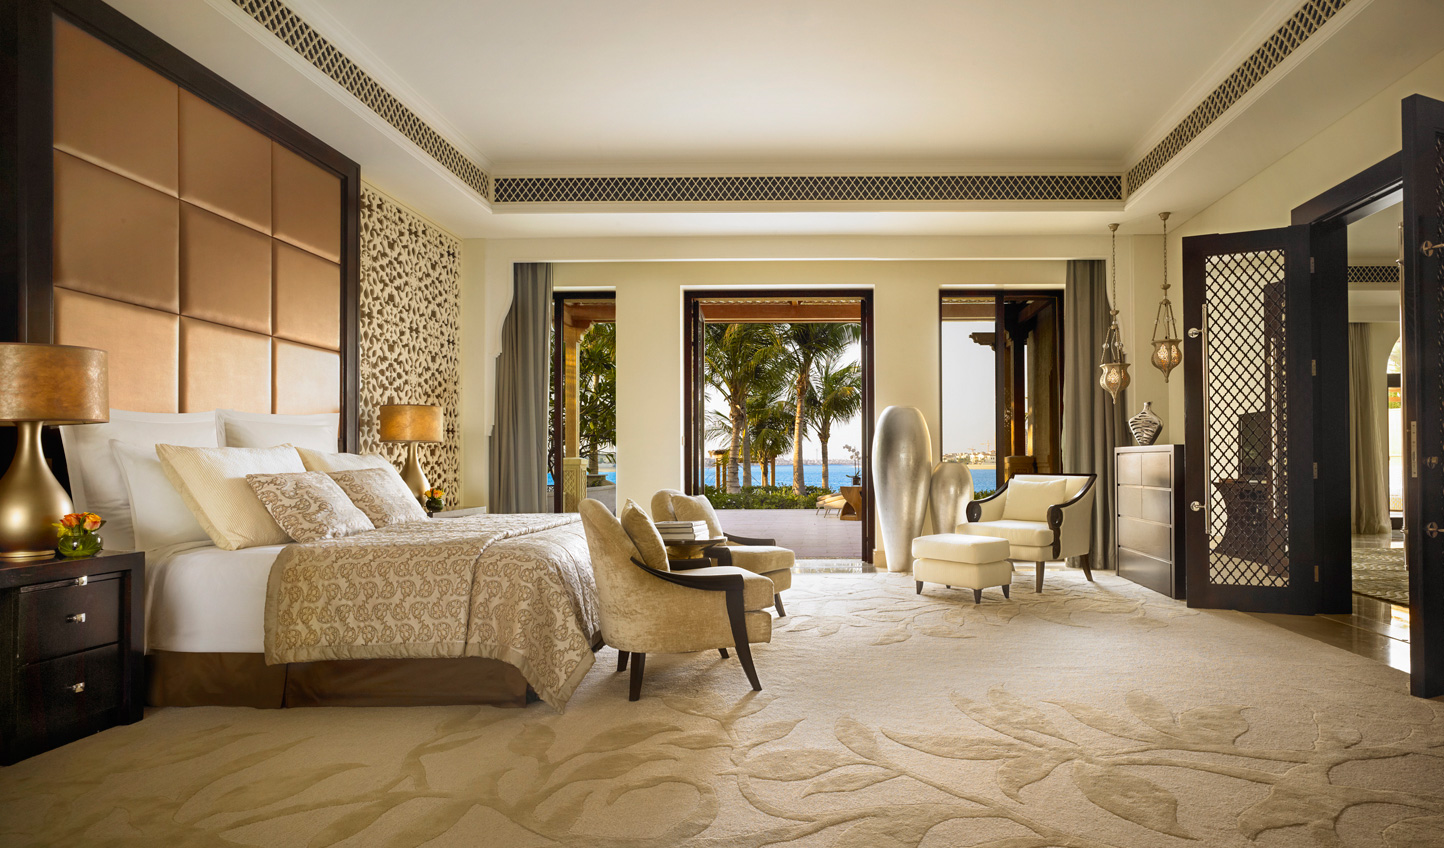 The master bedroom in the Beach Front Villa will exceed every expectation